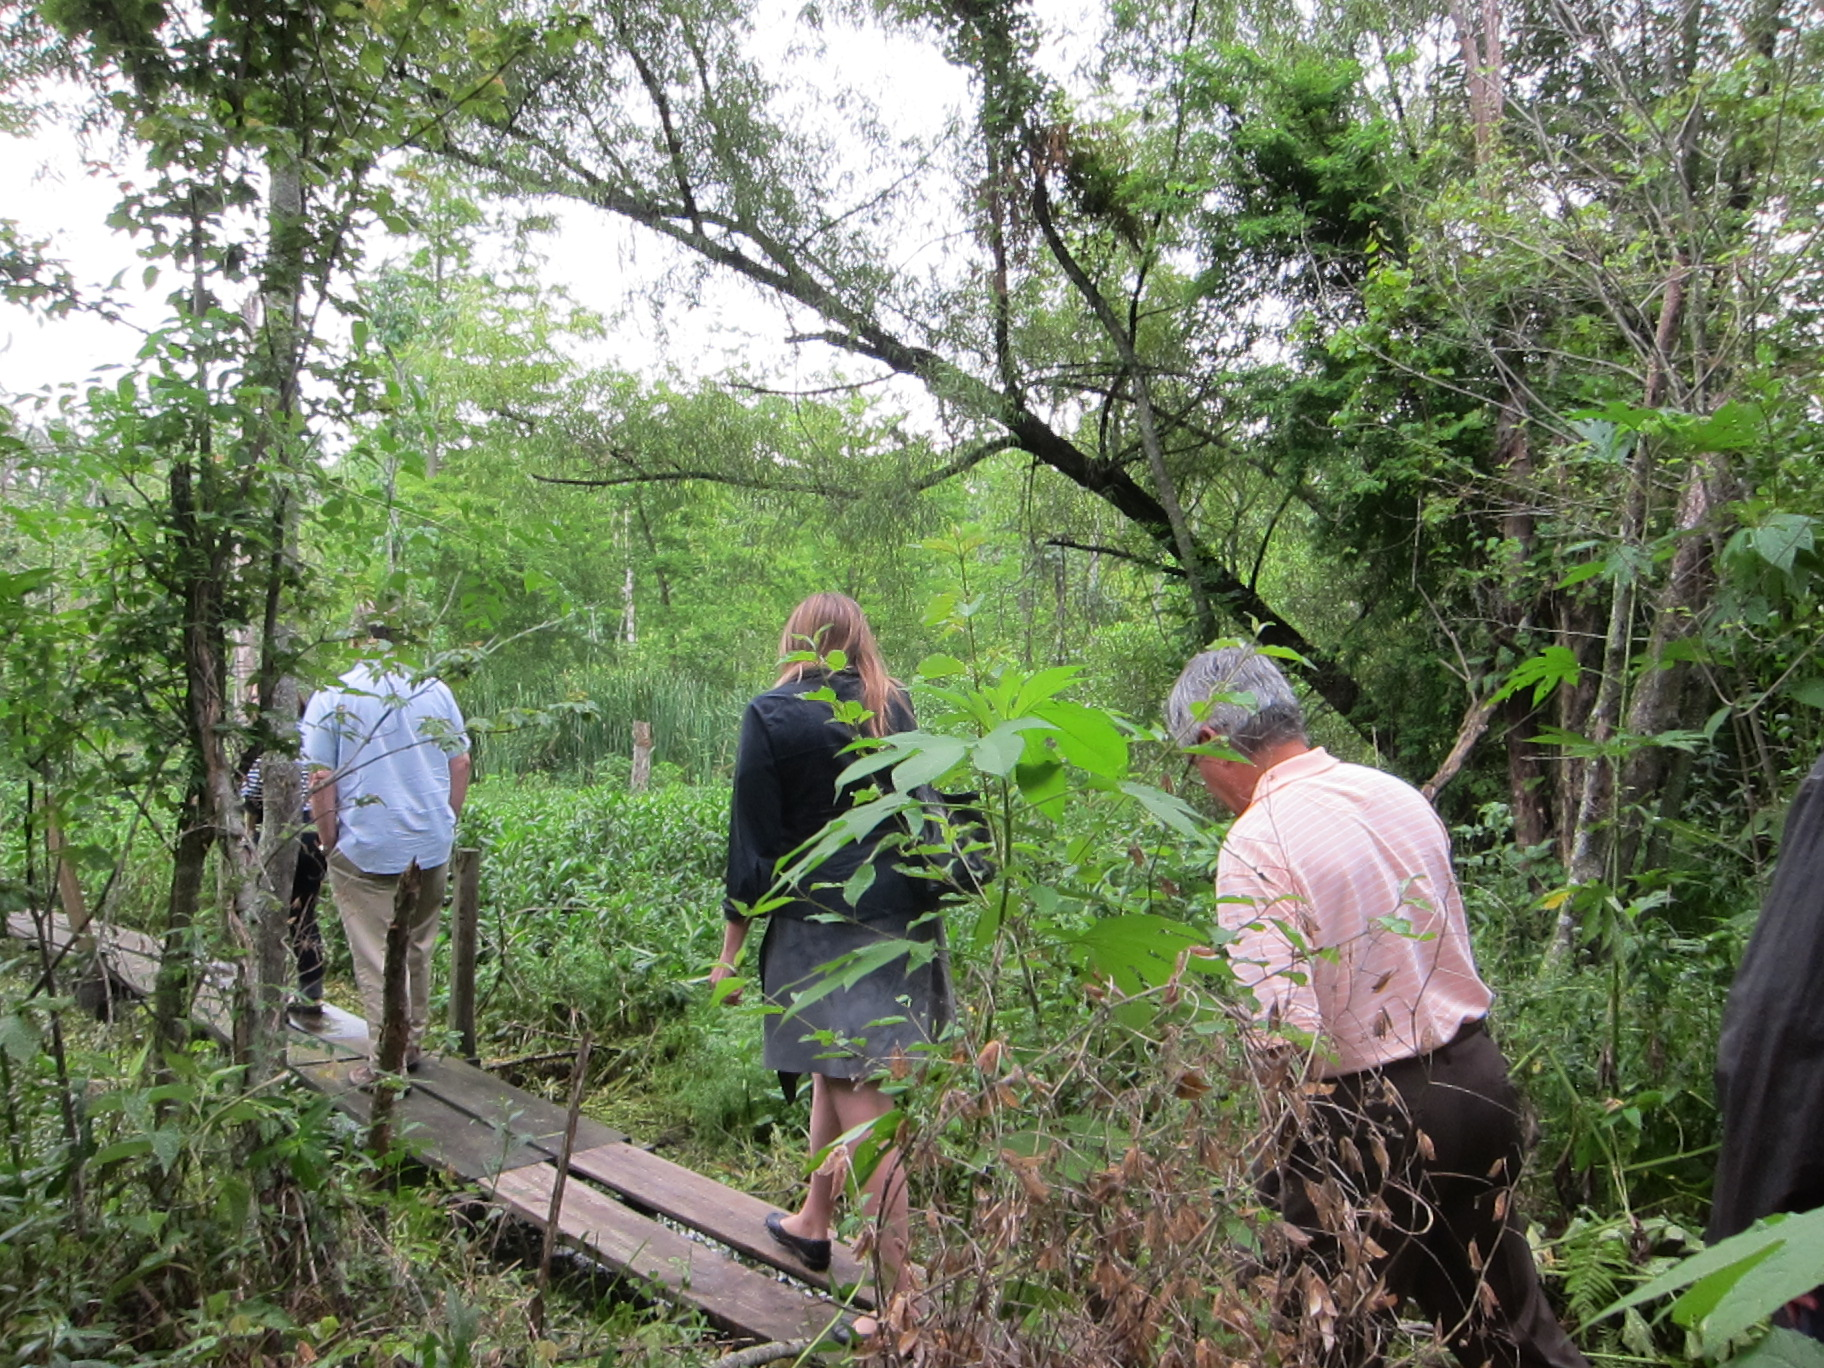 Workshop attendees board the trail winding through Tierra Resources' carbon offset project.